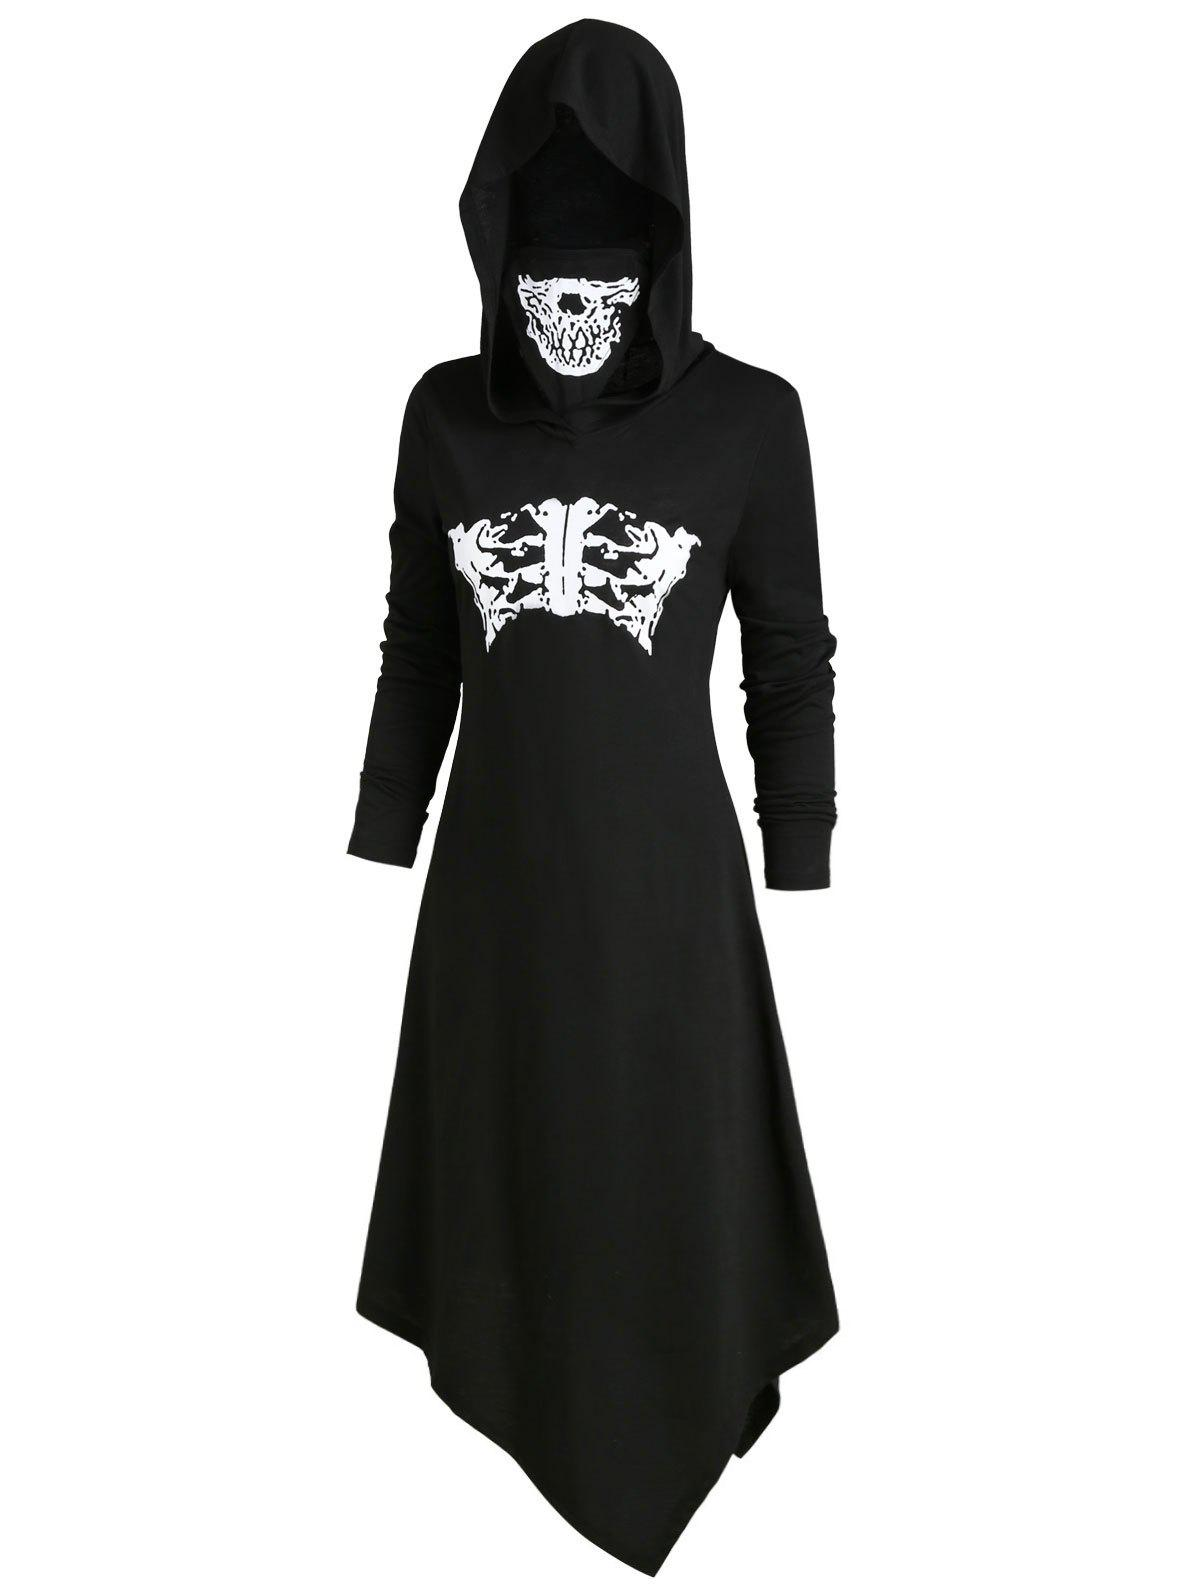 New Skeleton Long Sleeves Halloween Hooded Dress with Mask